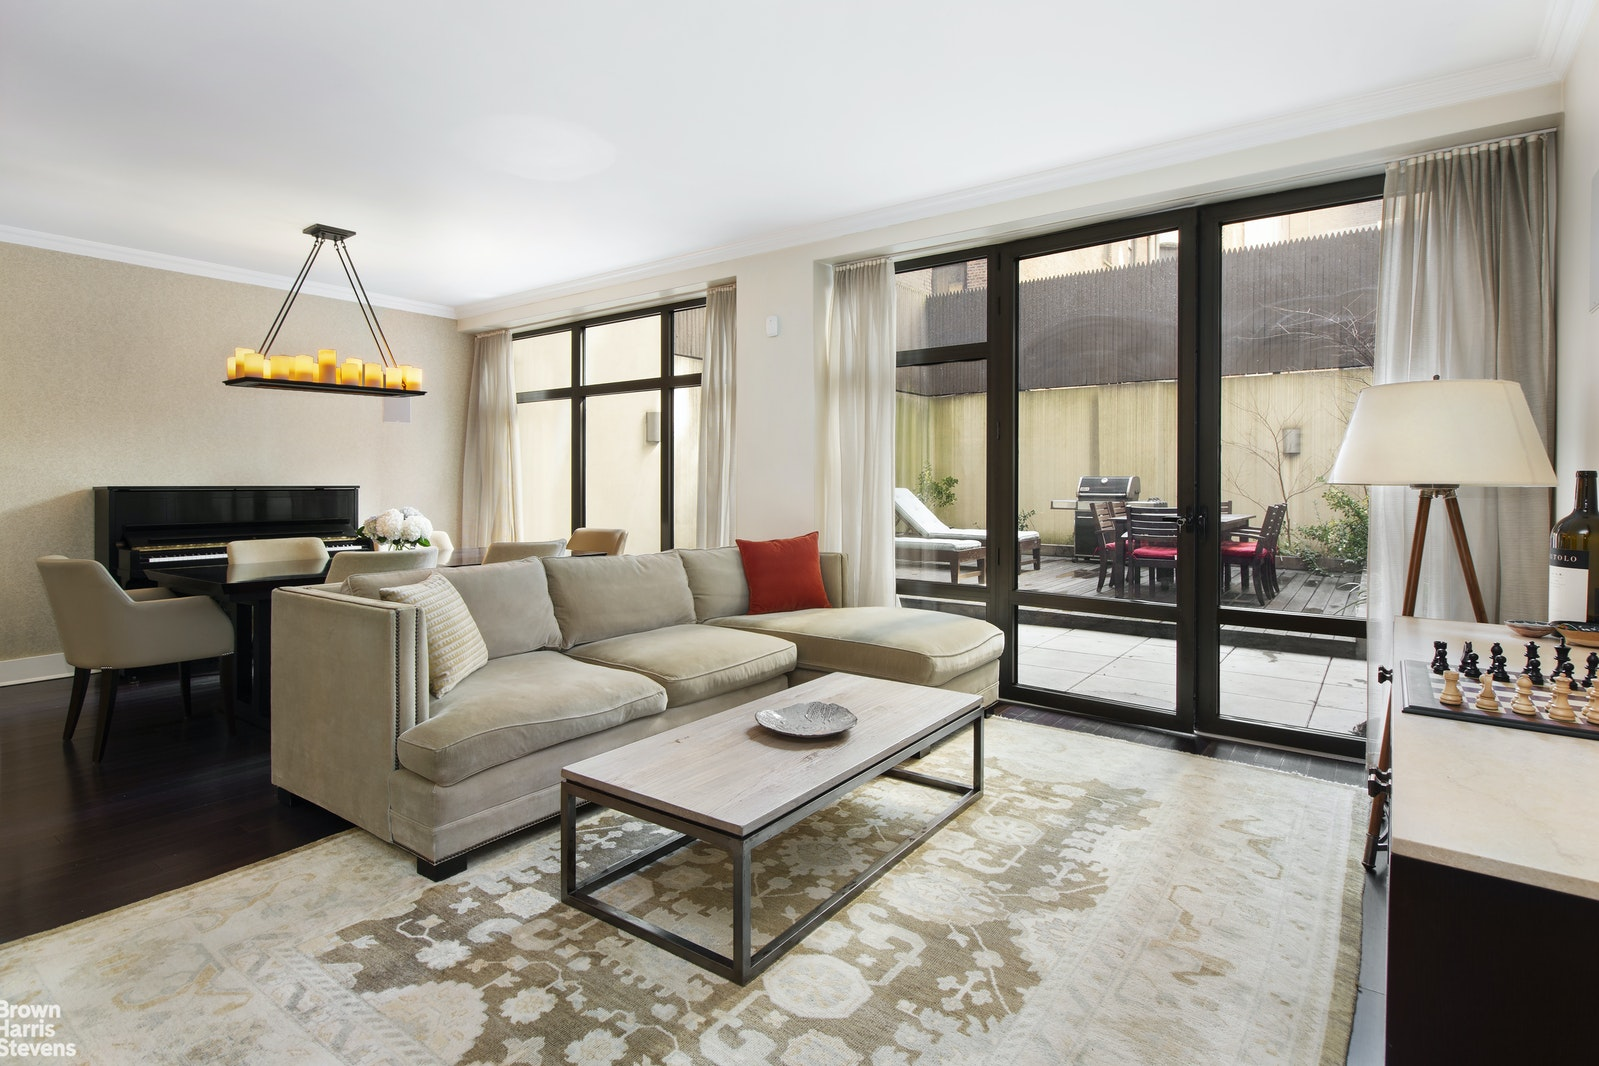 238 West 108th Street Garden, Upper West Side, NYC, 10025, $2,595,000, Property For Sale, Halstead Real Estate, Photo 1